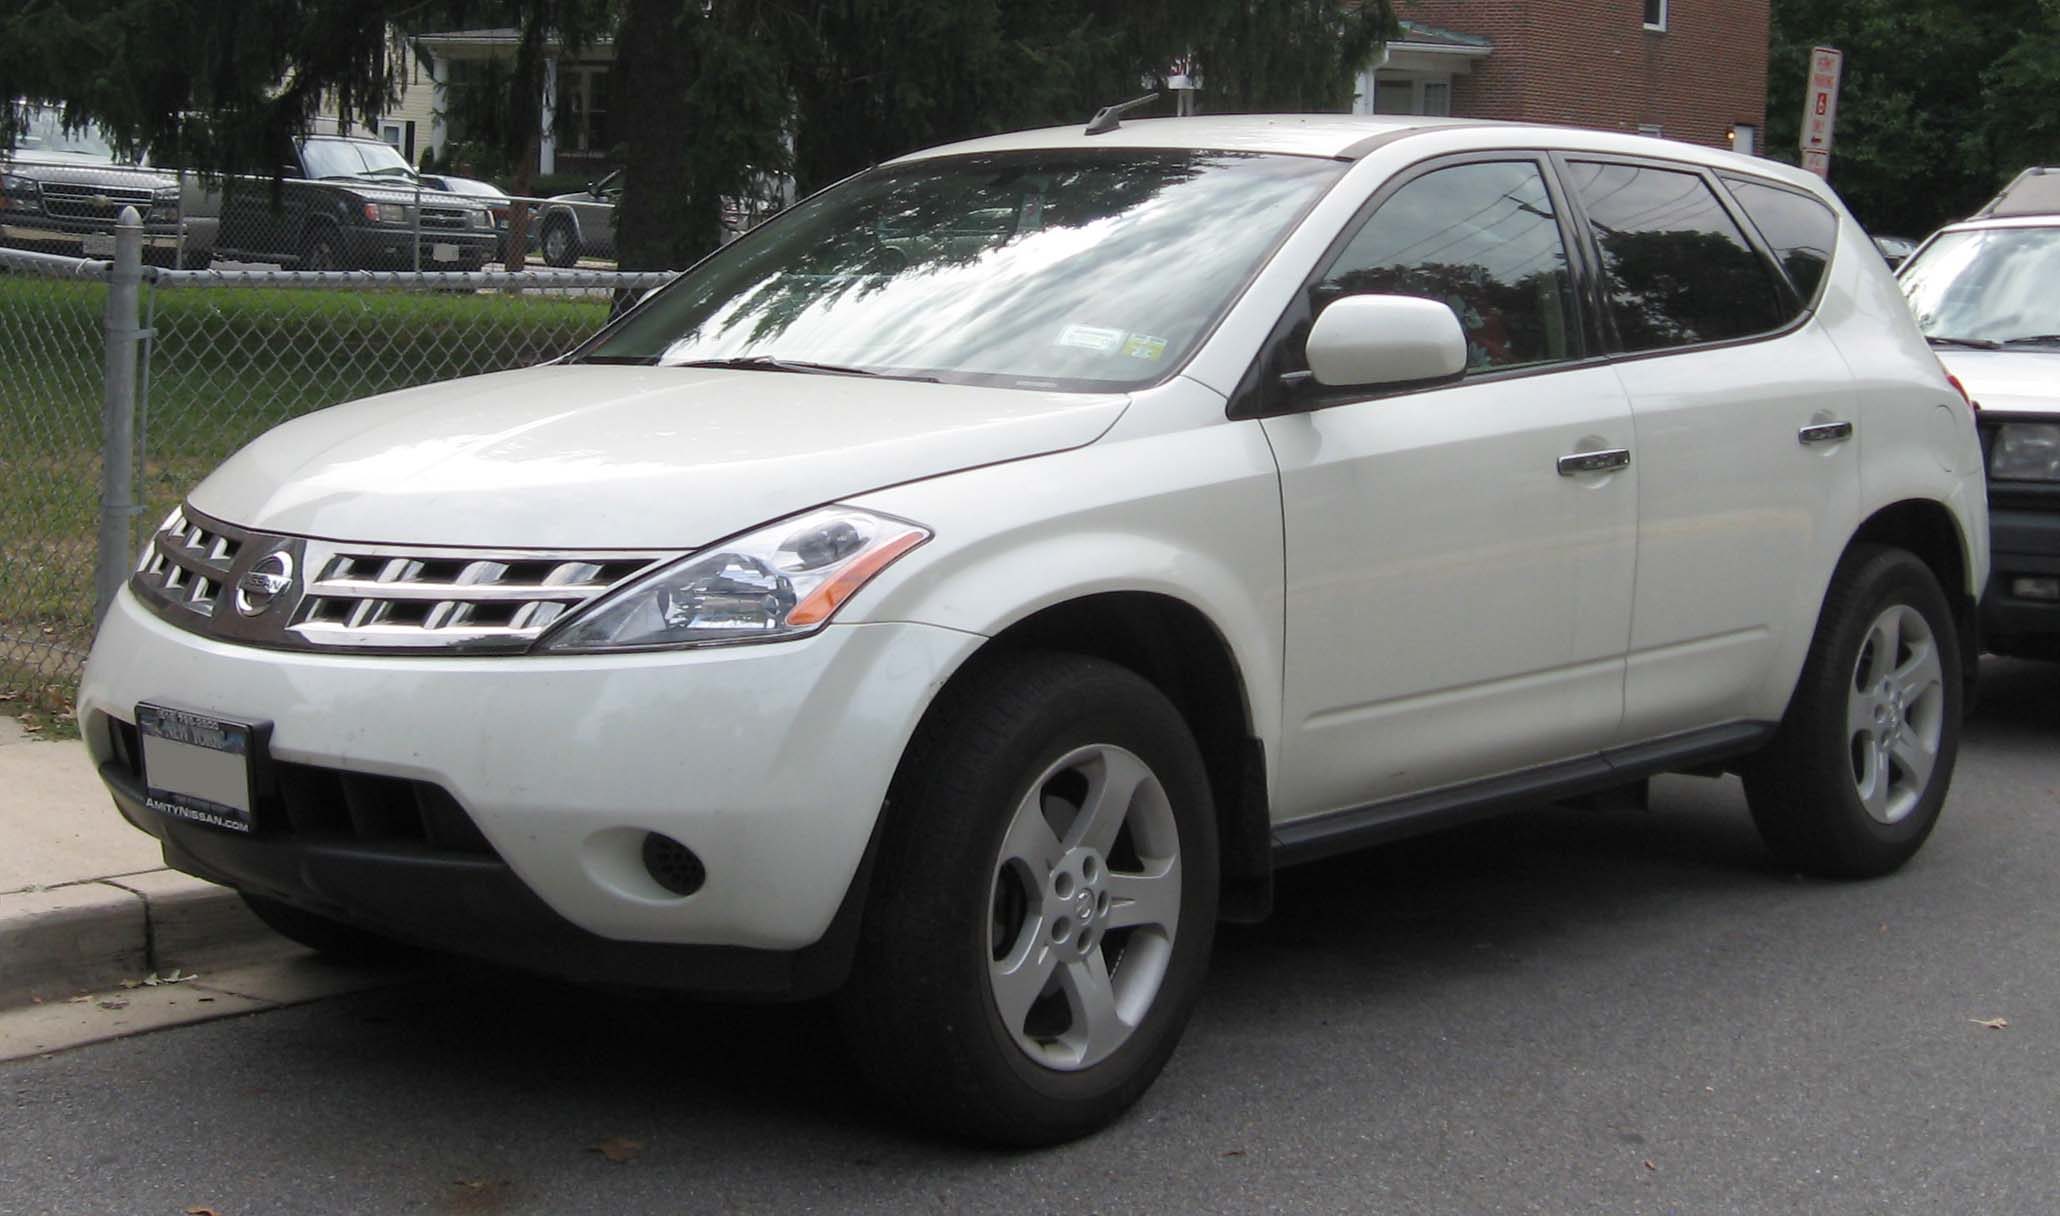 Nissan Murano 2007 Review Amazing Pictures And Images